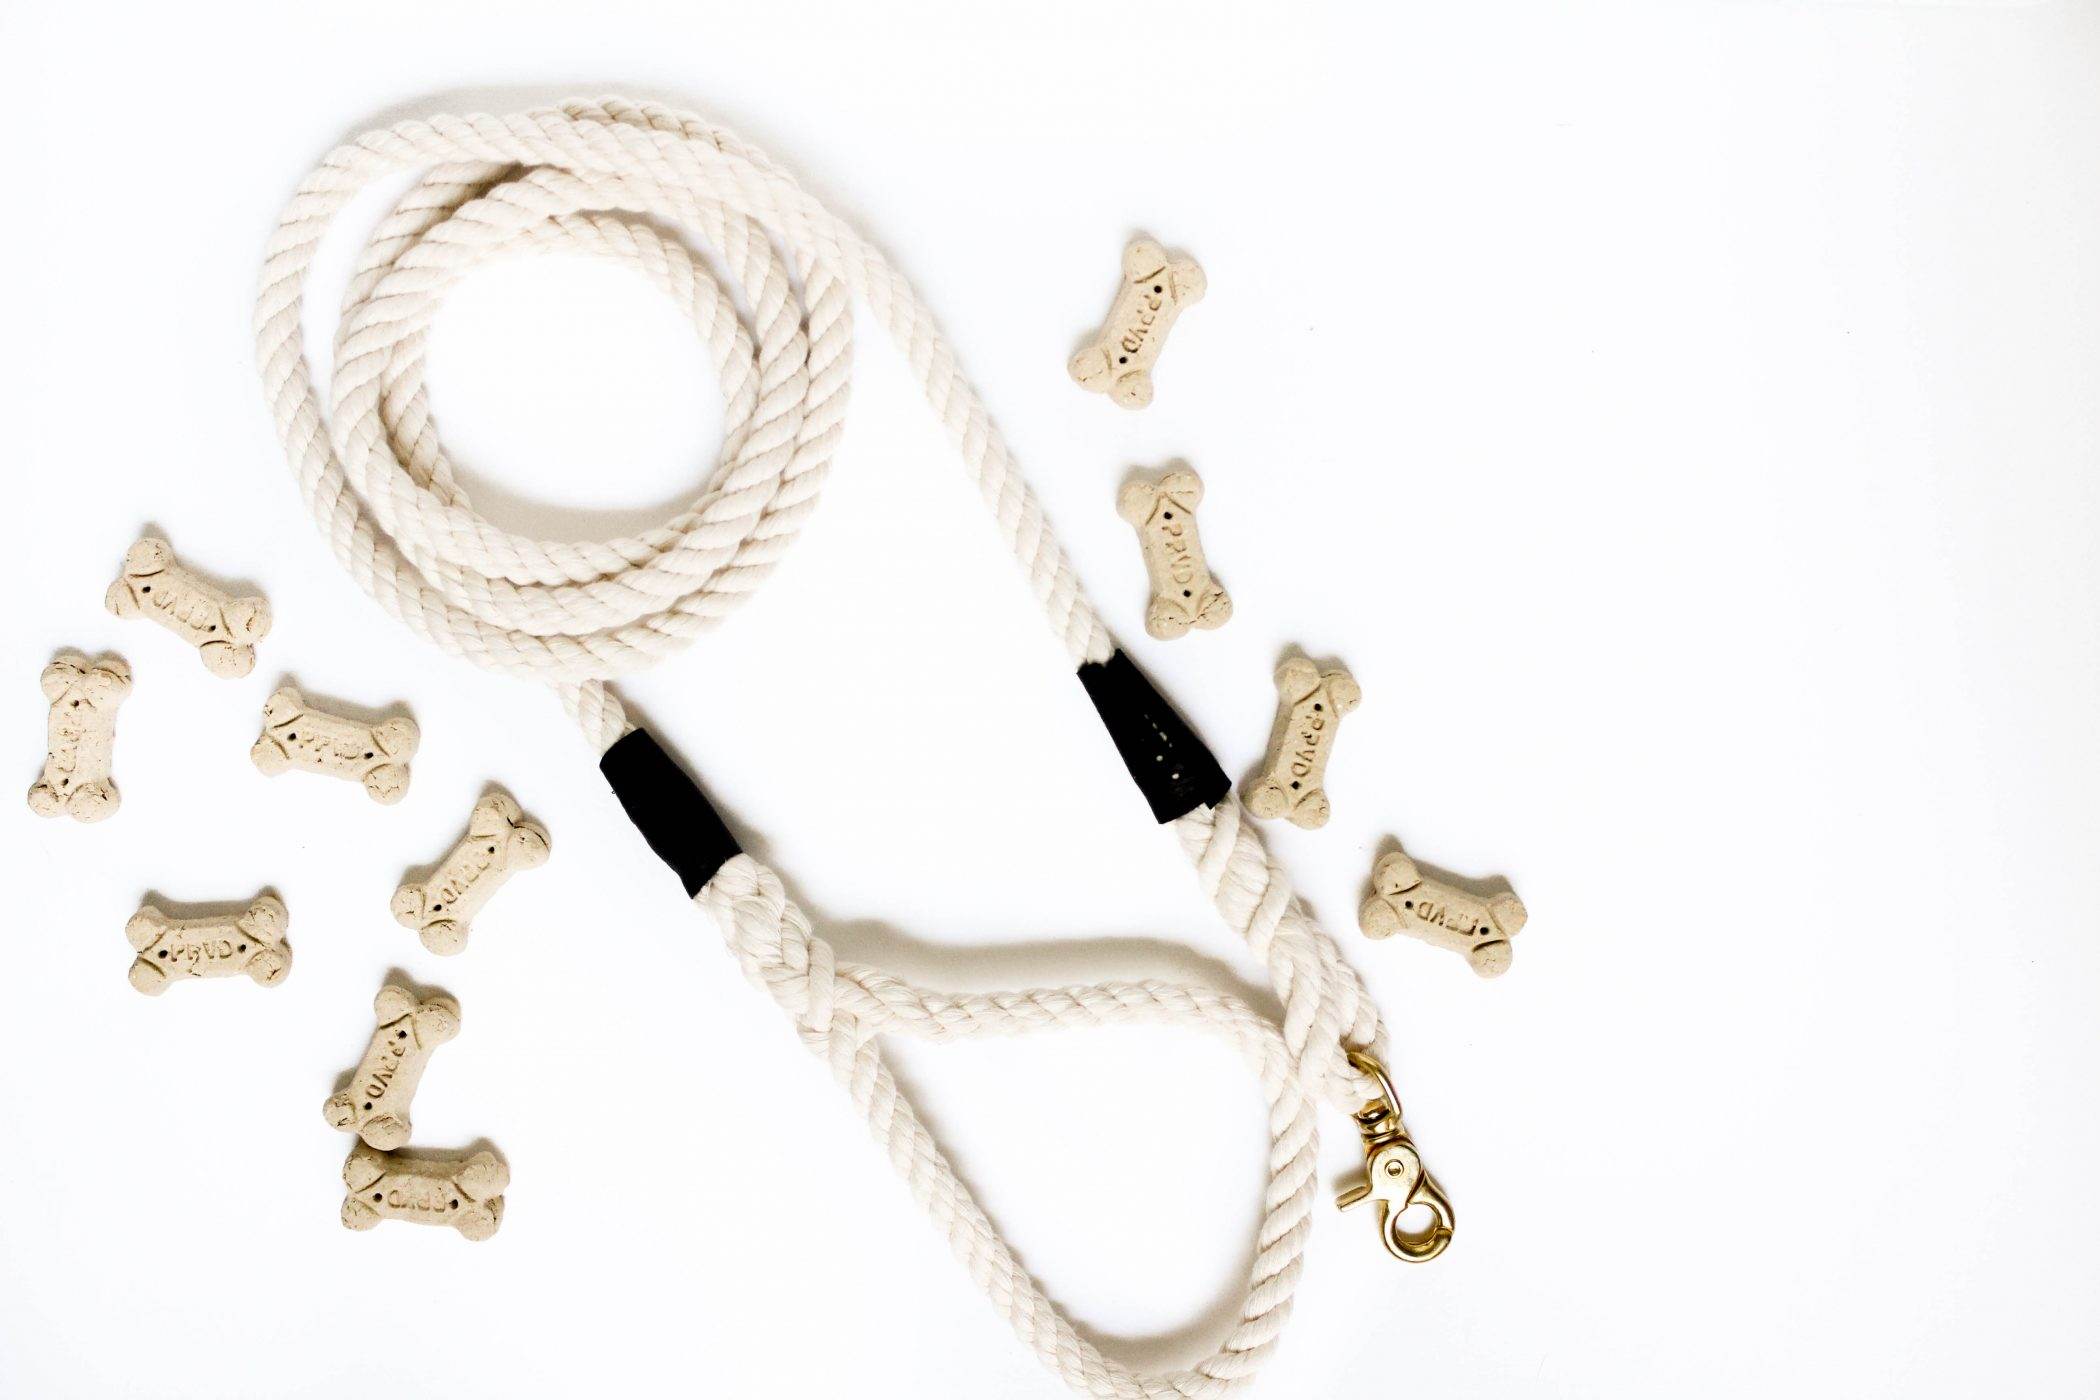 diy how to make a rope dog leash